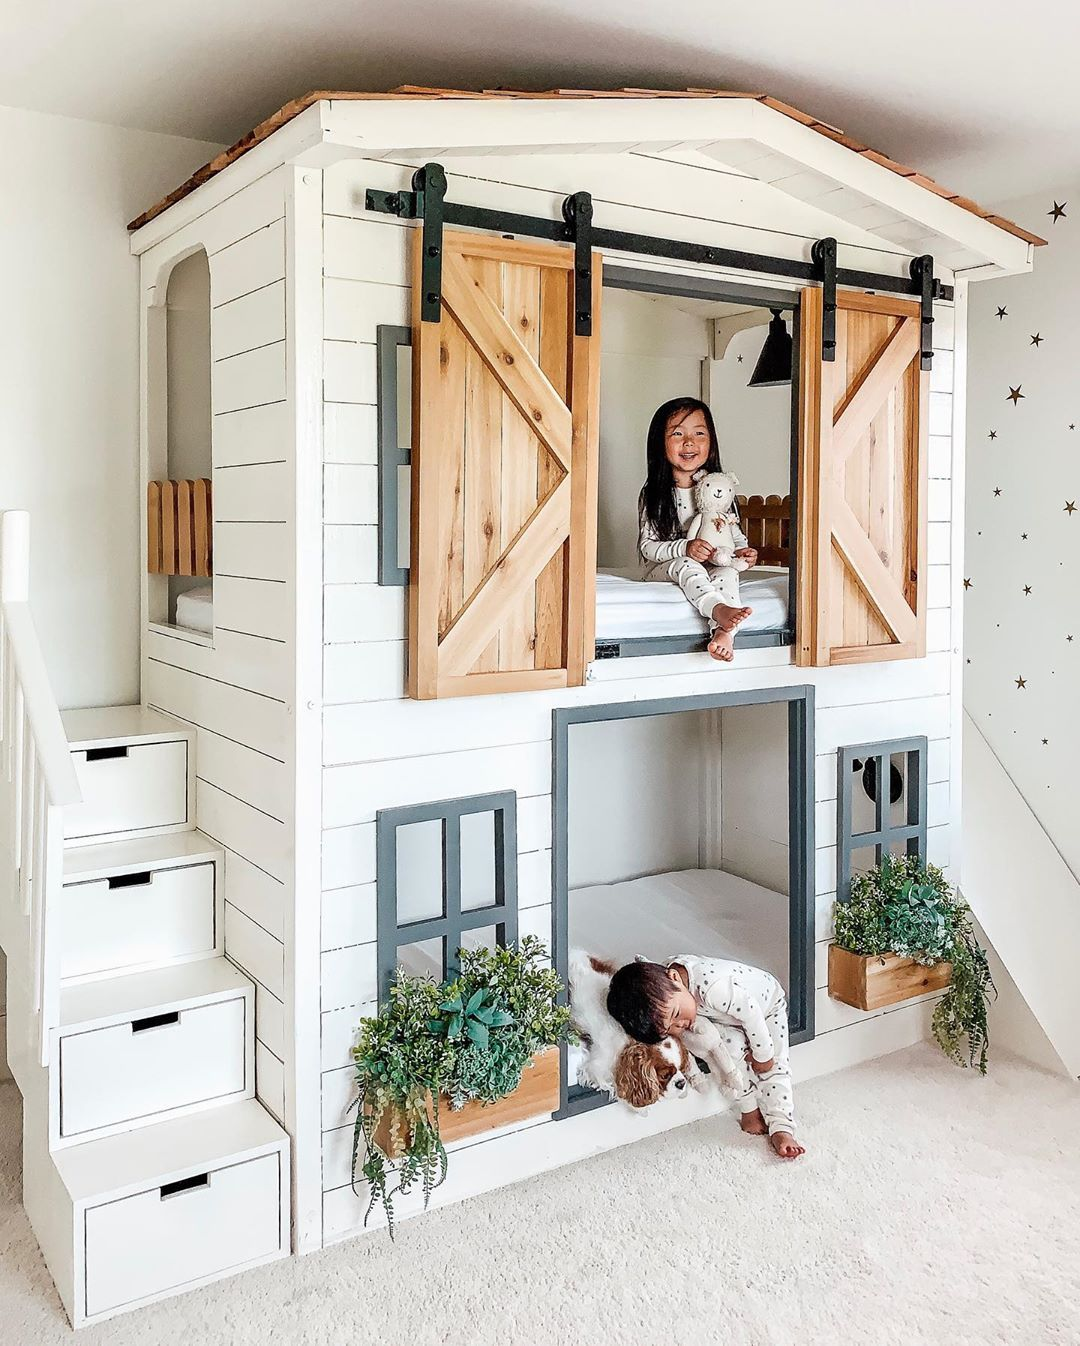 Aenny Chung On Instagram Perfectly Normal To Live Vicariously Through One S Kids Right We Are Moving Dj Into Da House Bunk Bed Girl Bedroom Designs Home